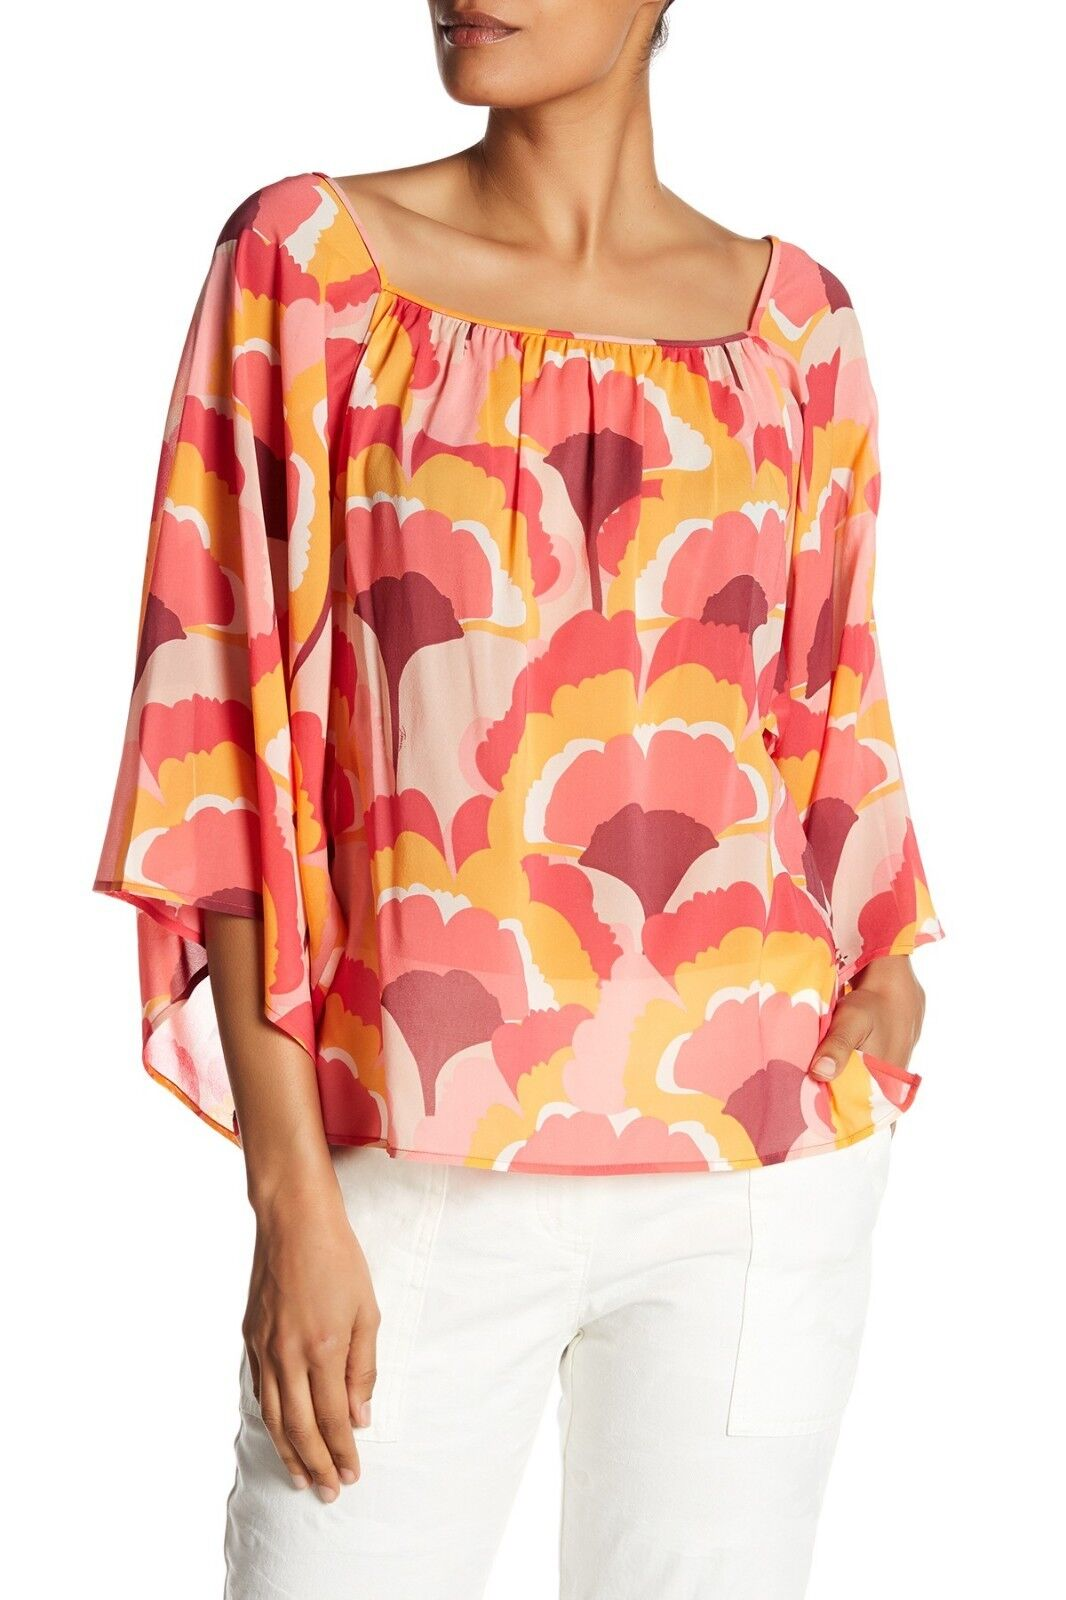 NWT- Trina Turk Ginkoba Printed Silk 3 4 Sleeve Blouse Top, Multi - Größe Small